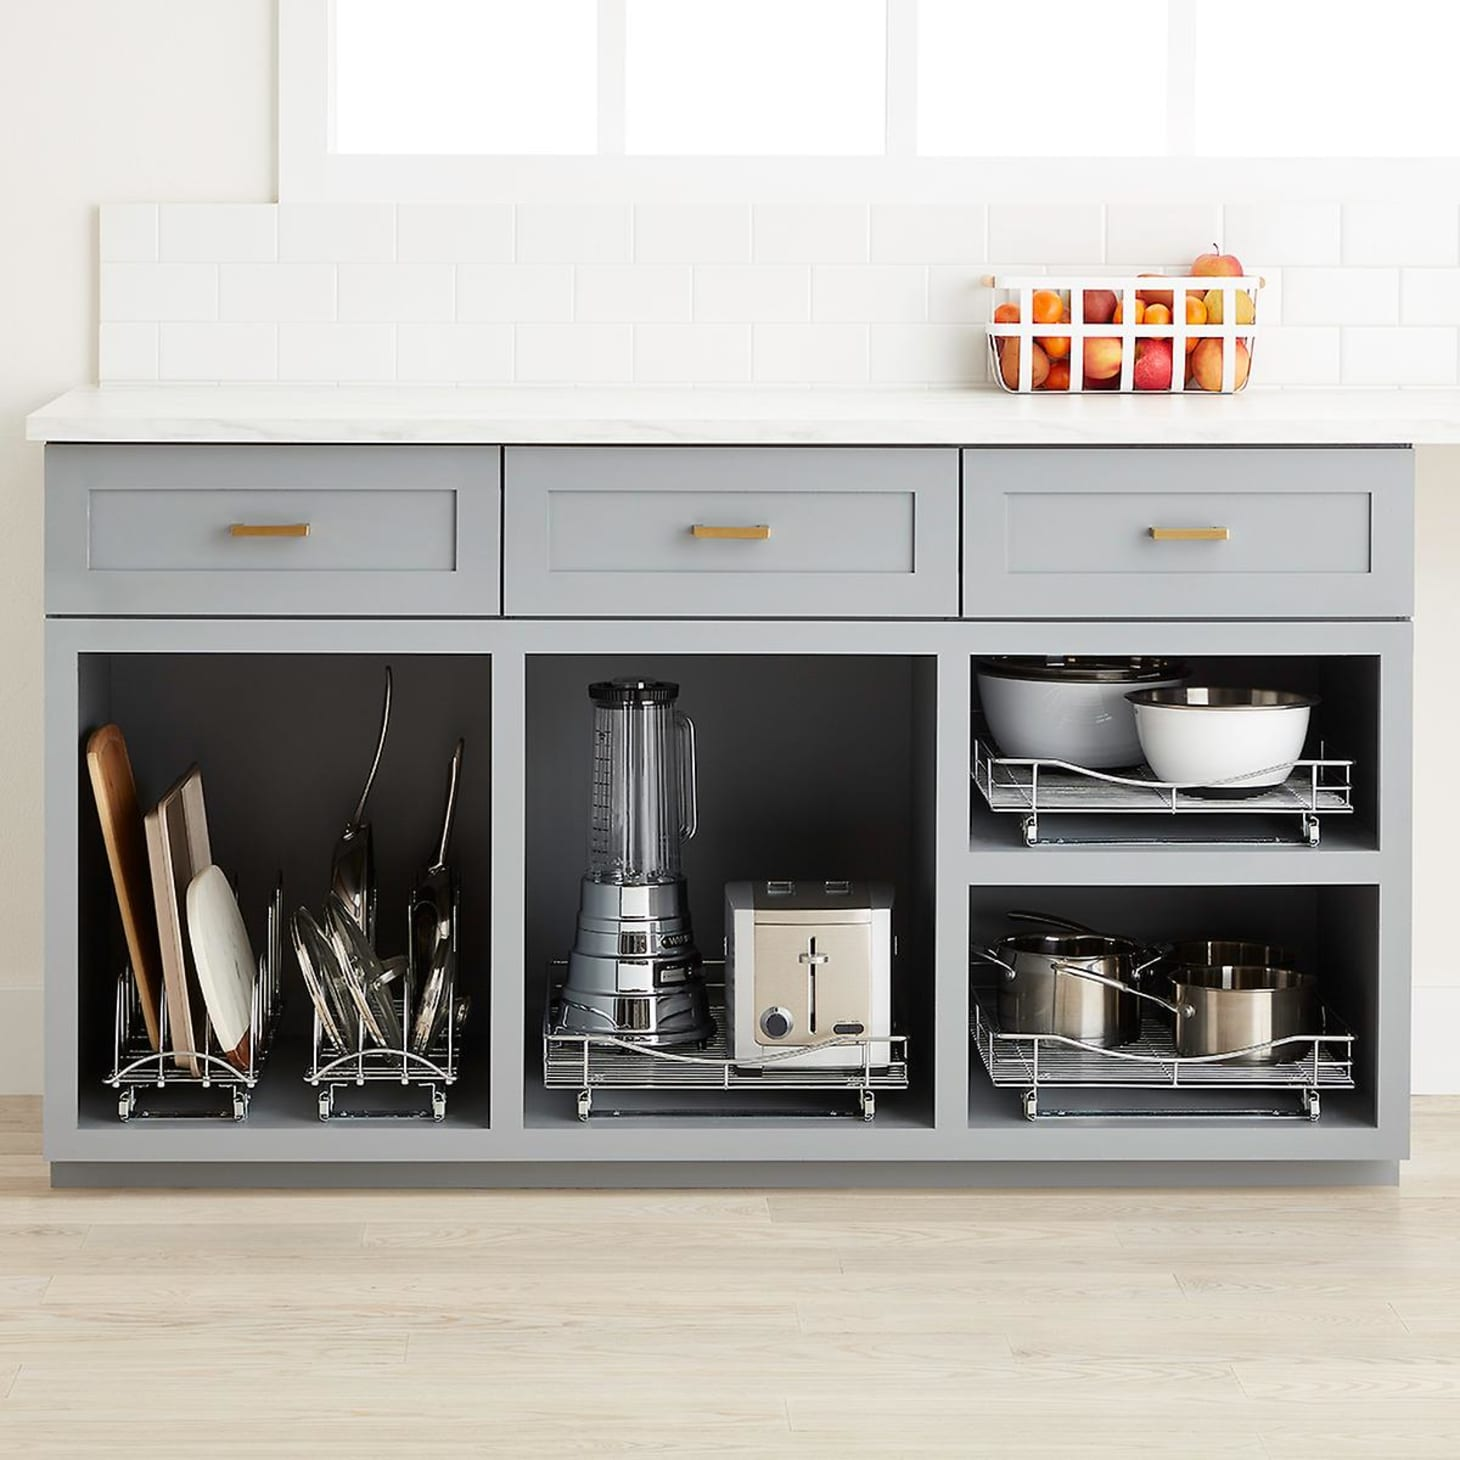 The Container Store Sale August 2019 Kitchen Storage And